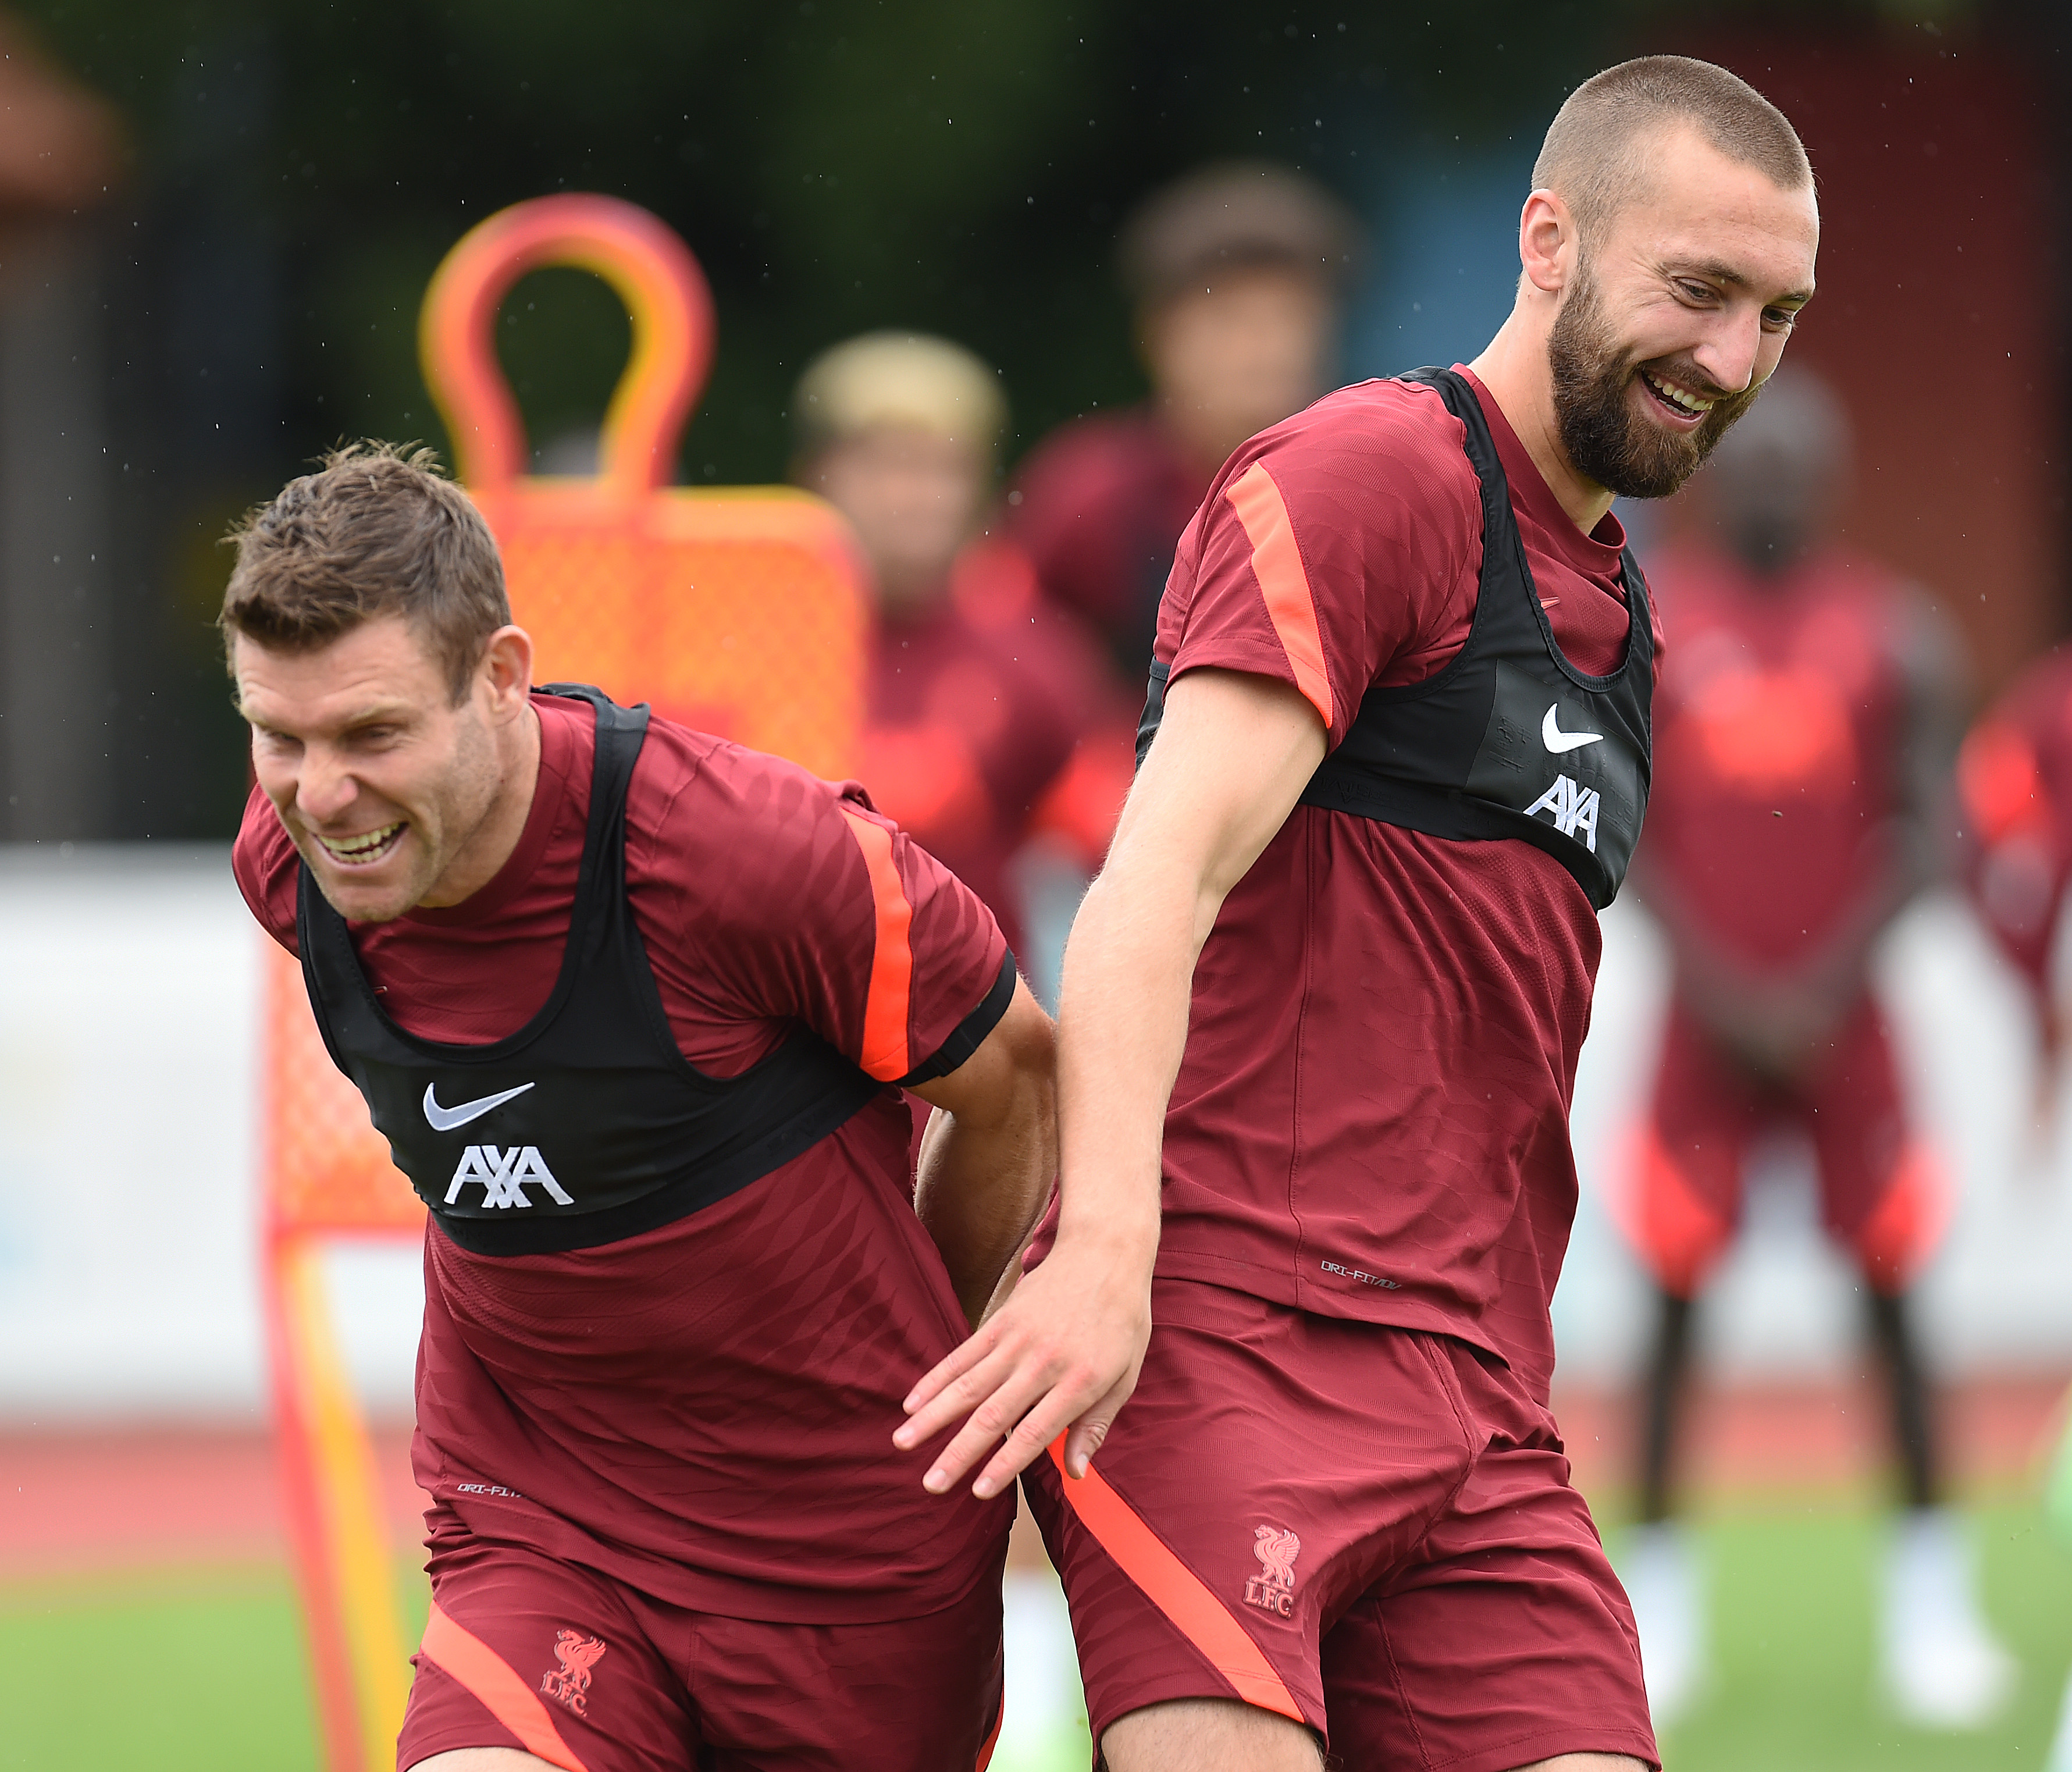 James Milner of Liverpool with Nathaniel Phillips of Liverpool during a training session on August 01, 2021 in France.